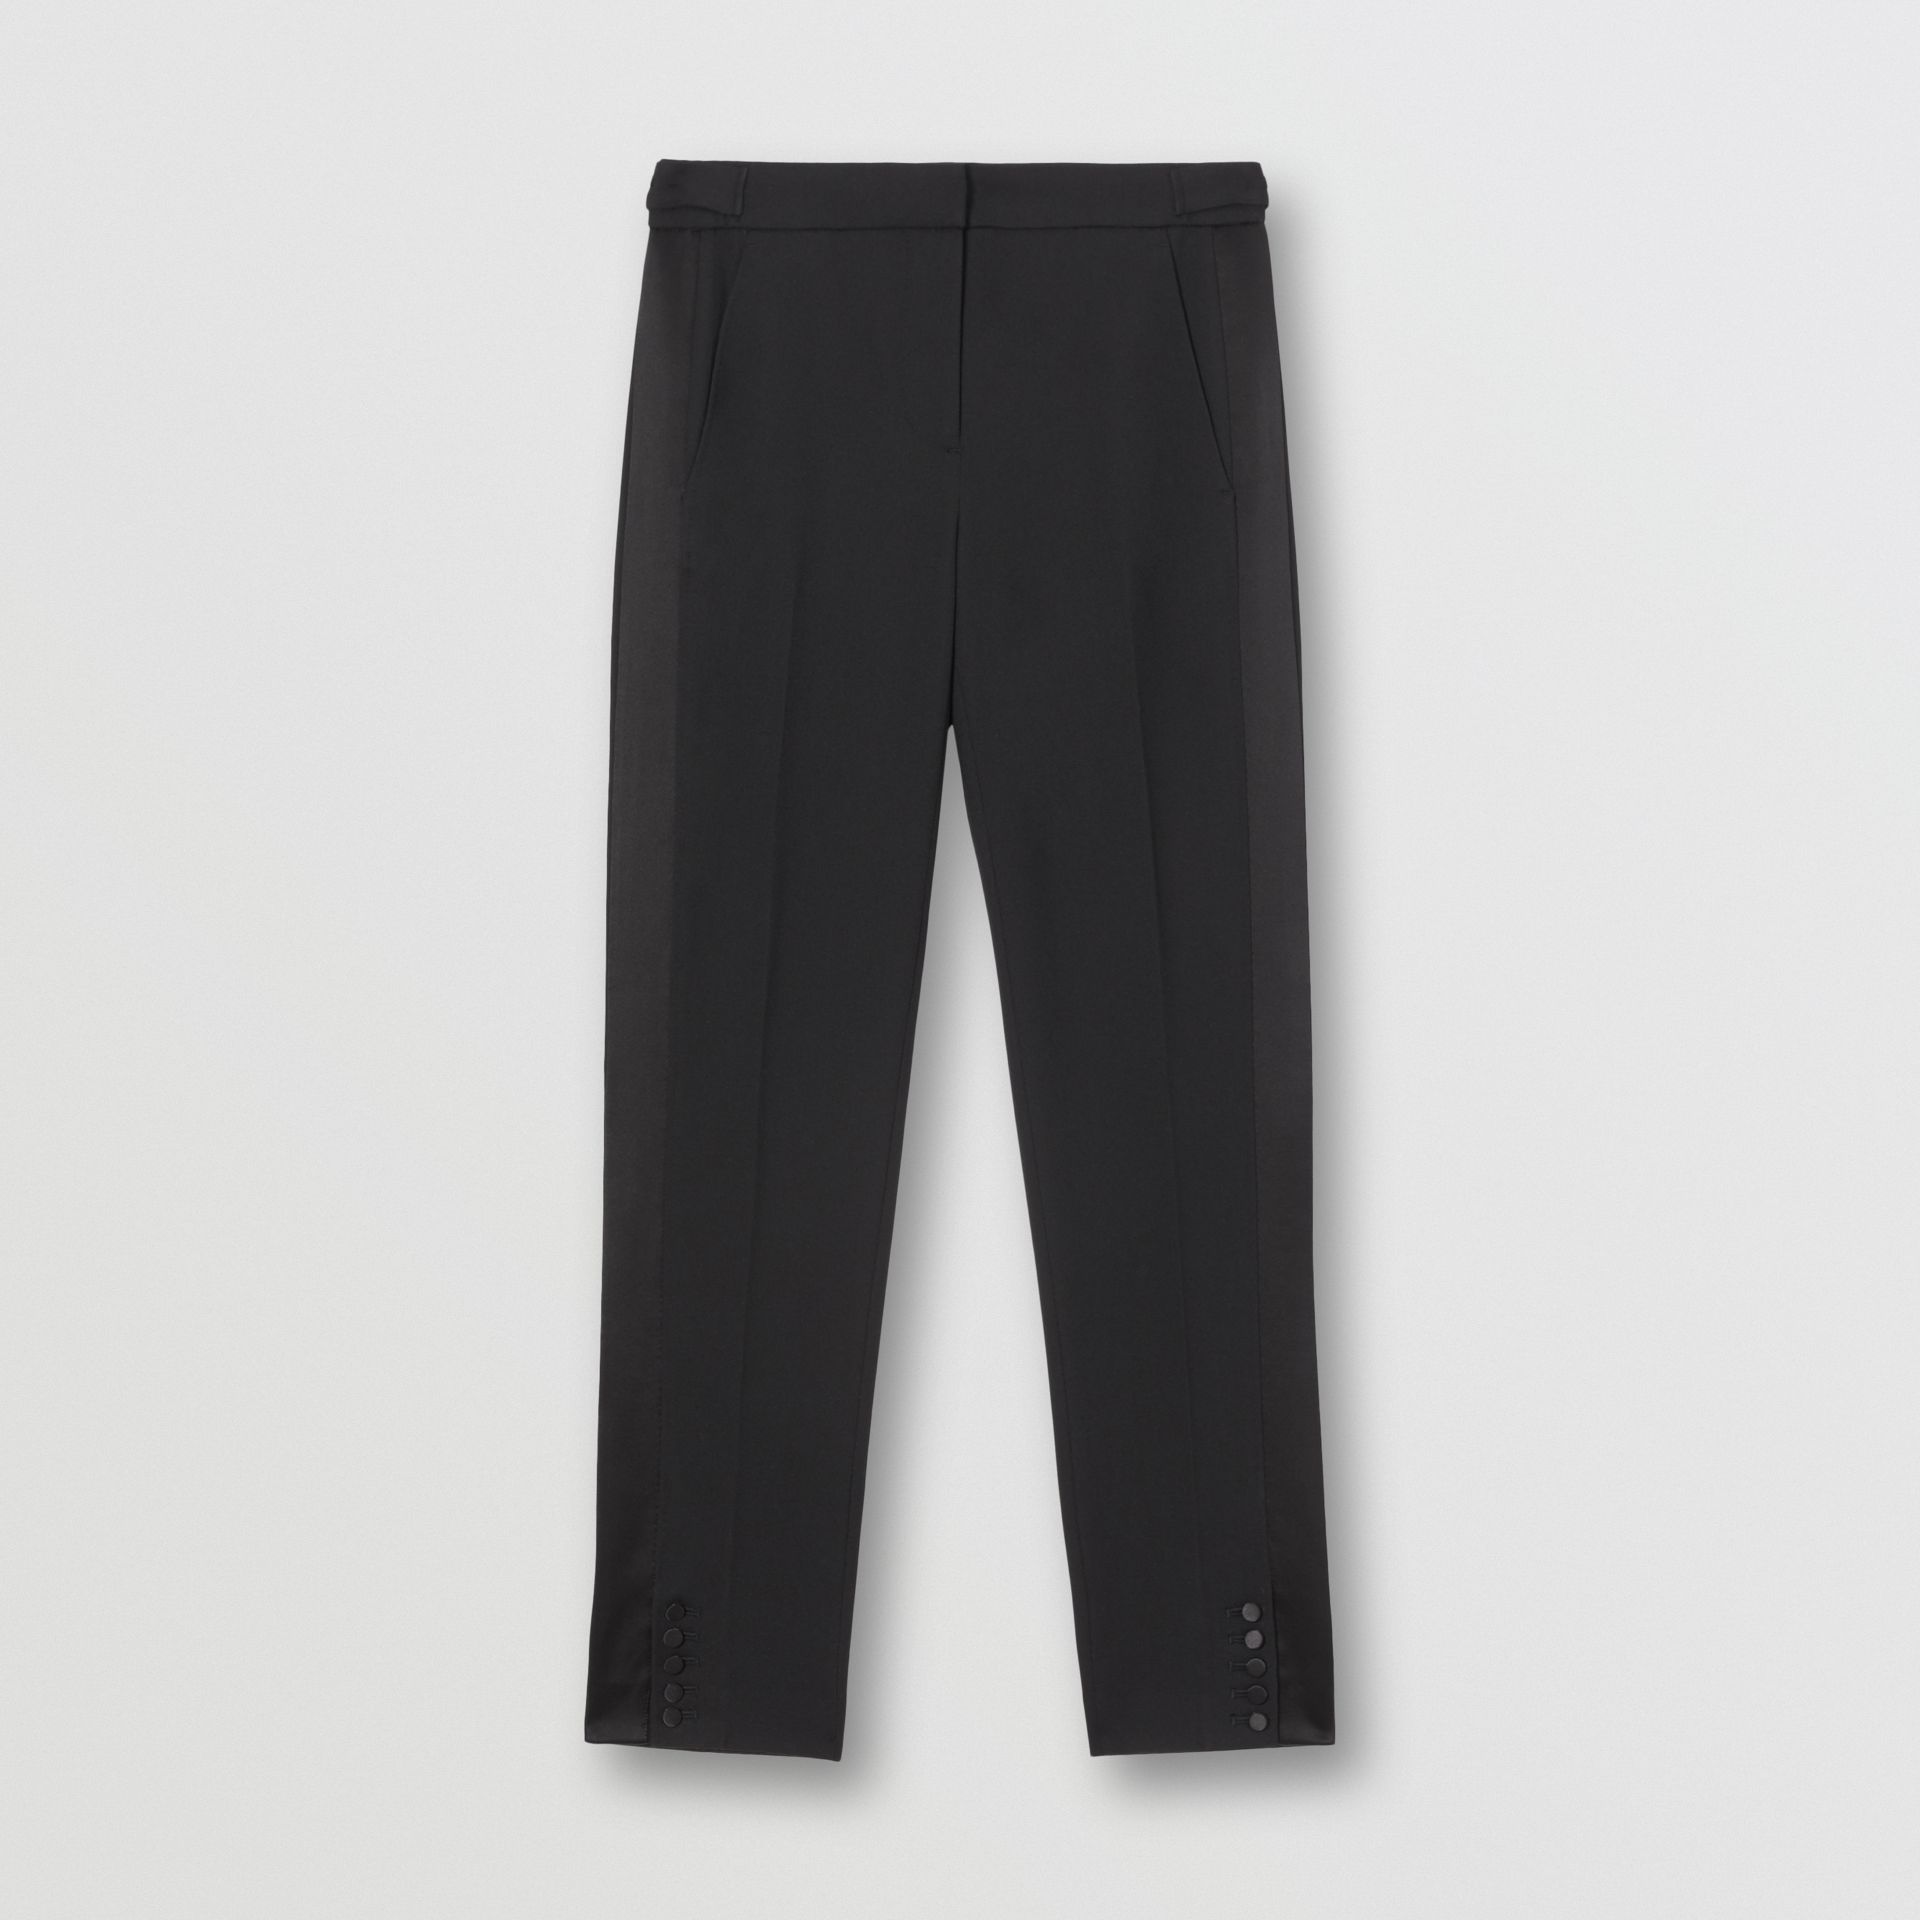 Satin Stripe Wool Tailored Trousers in Black - Women | Burberry United Kingdom - gallery image 3